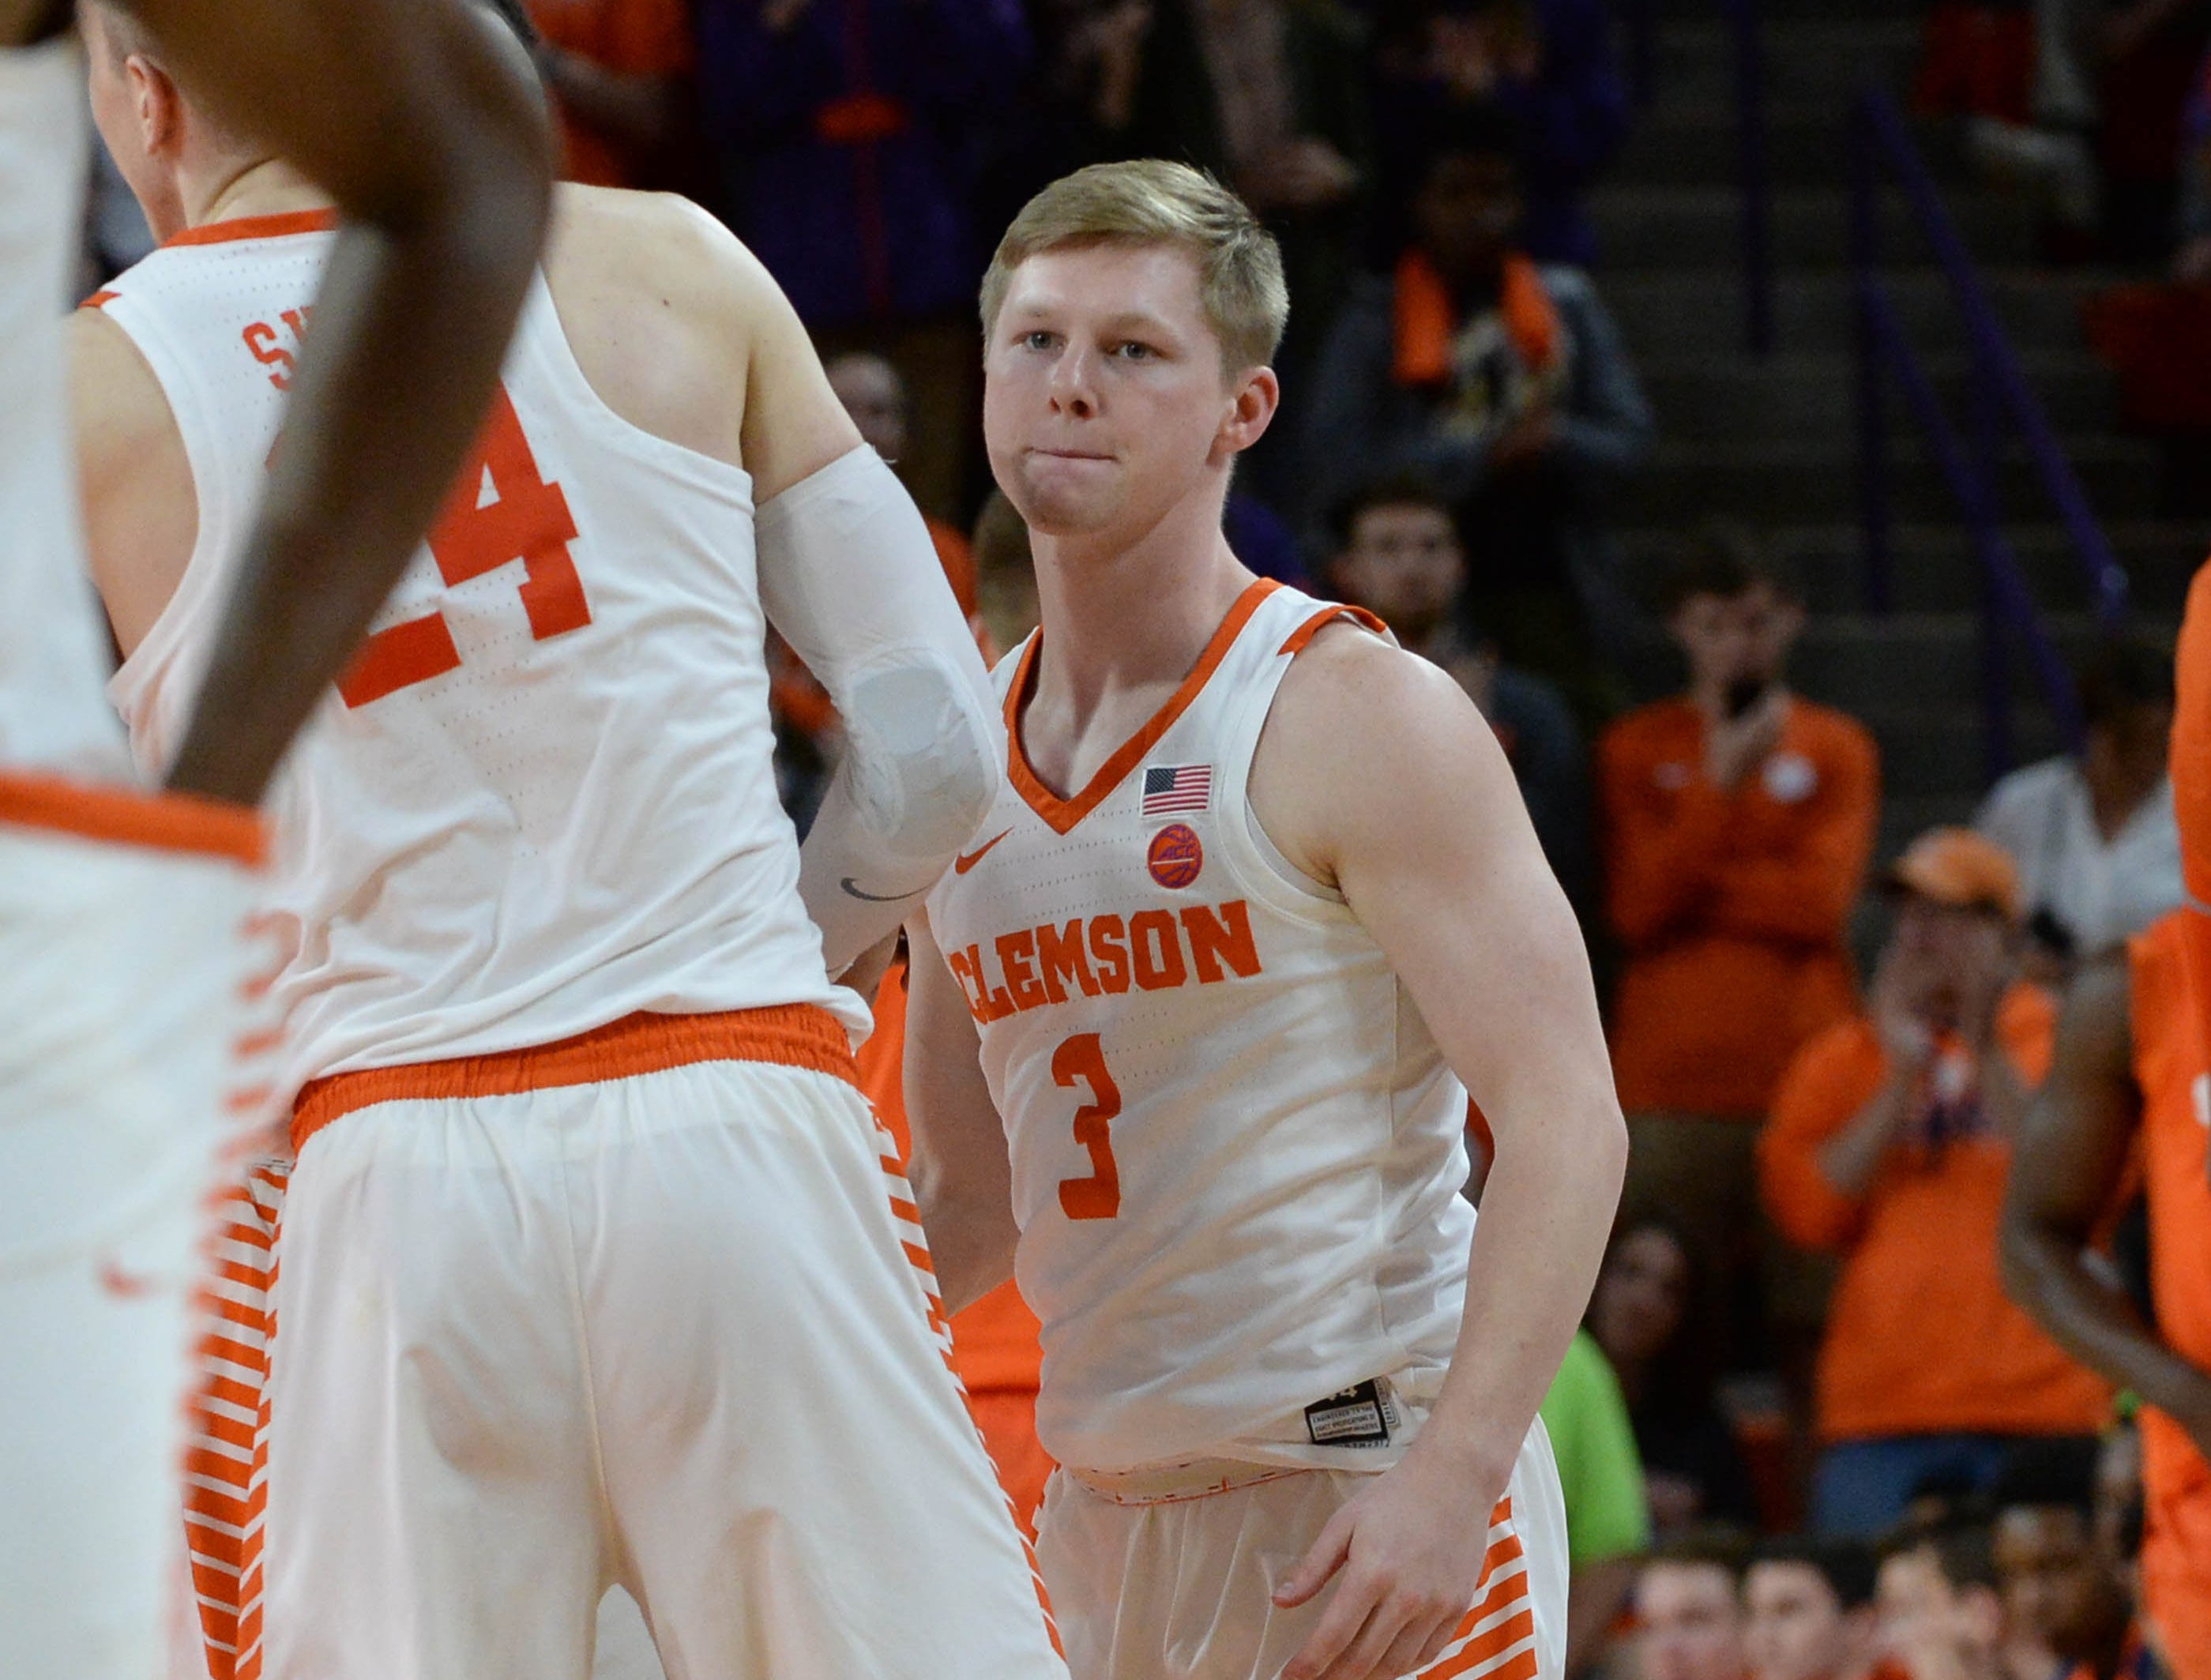 Clemson guard Lyles Davis (3) gets into the game agains Syracuse during the second half in Littlejohn Coliseum in Clemson Saturday, March 9, 2019.